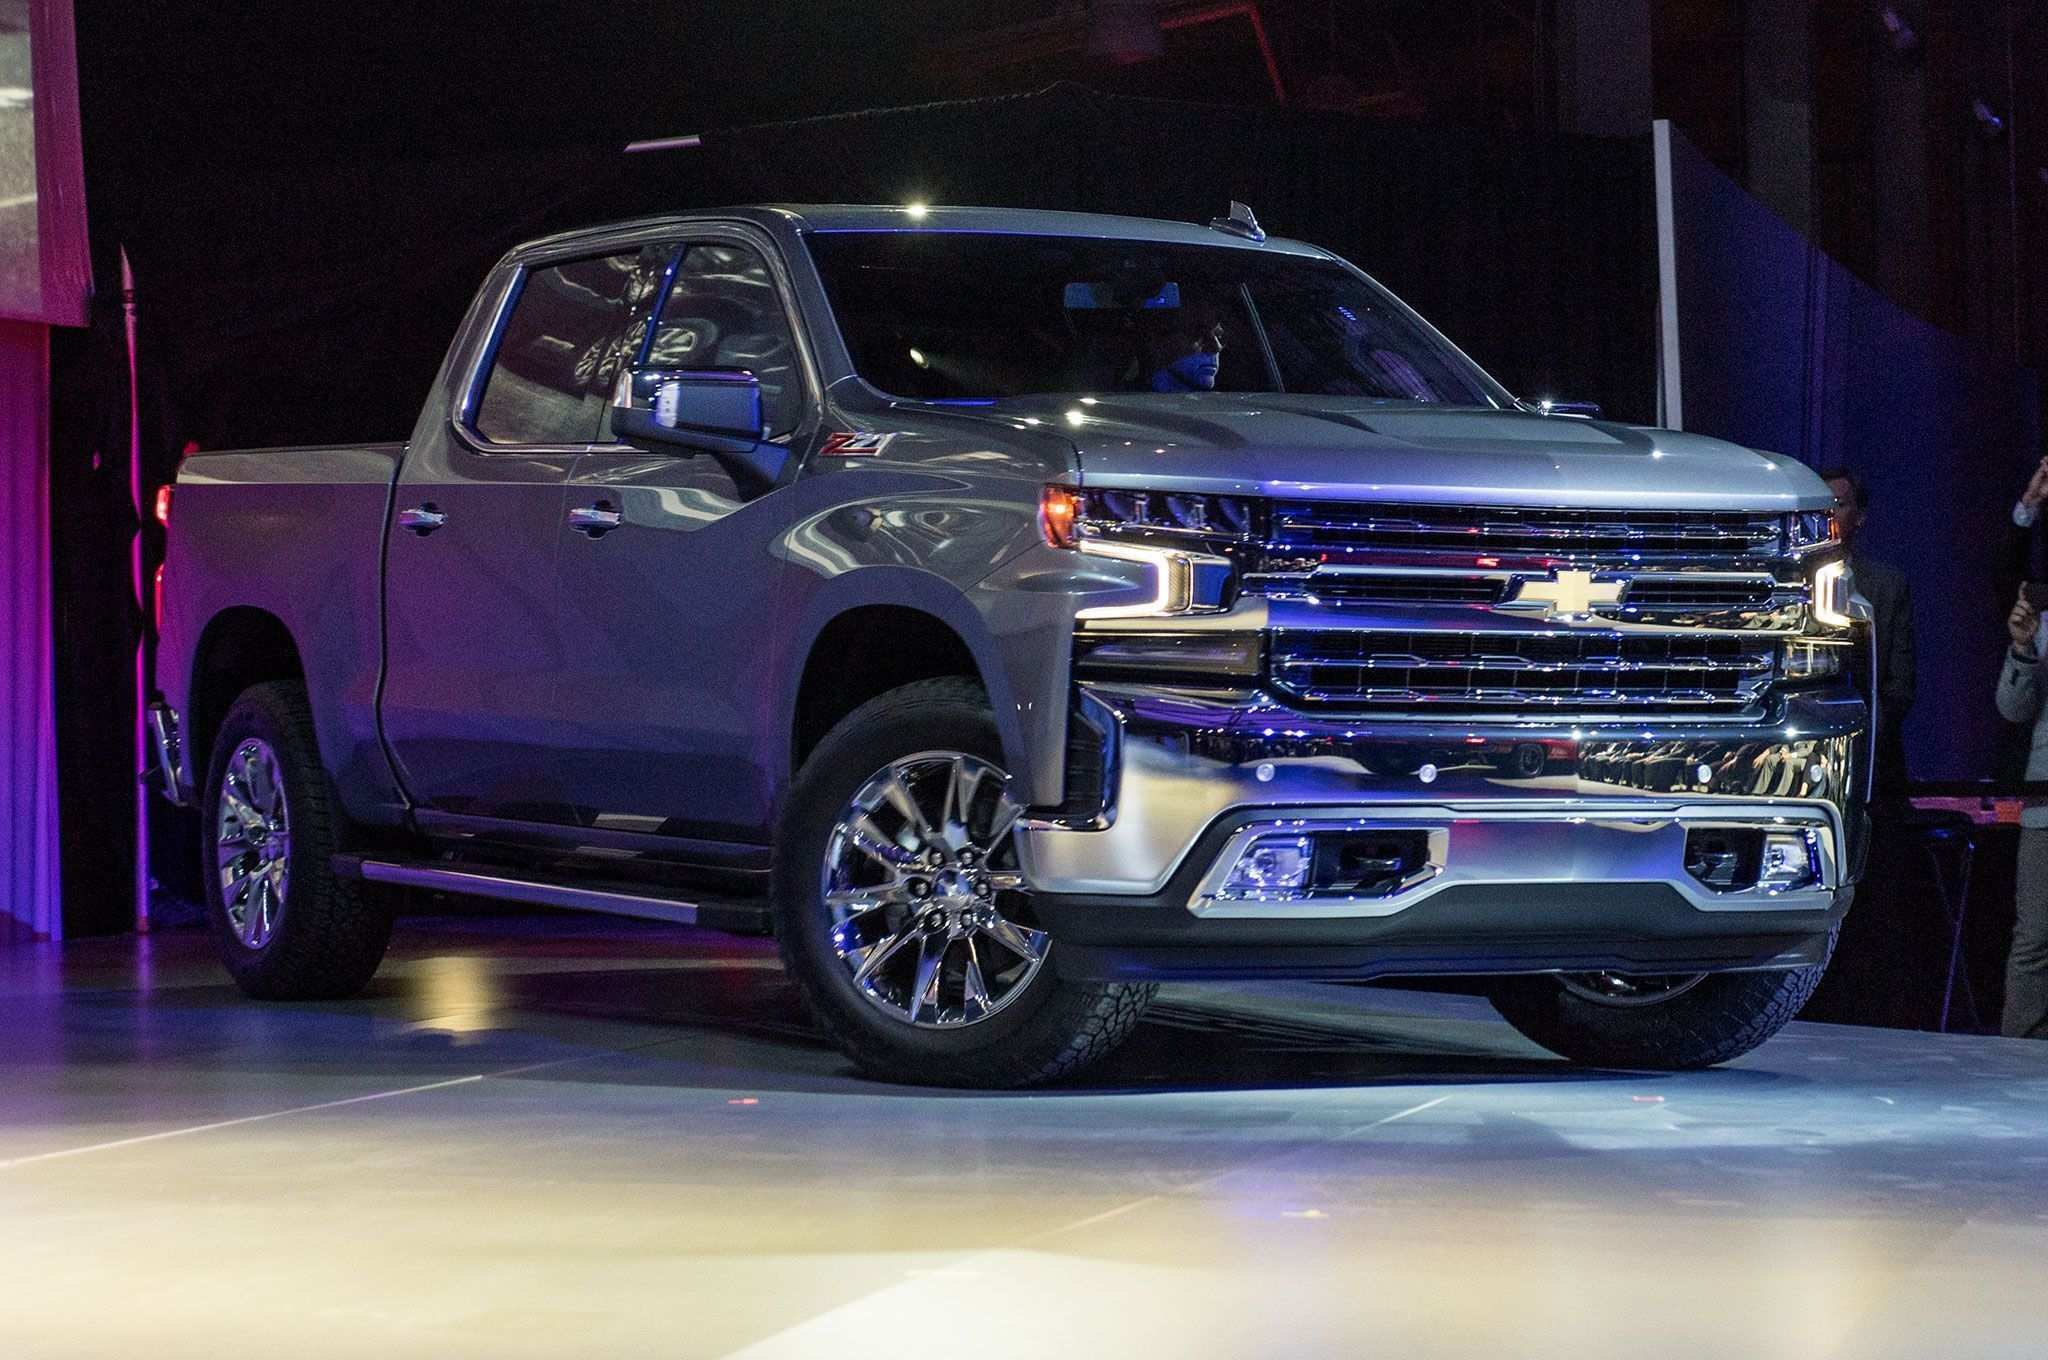 53 New 2020 Chevy Colorado Going Launched Soon Release Date with 2020 Chevy Colorado Going Launched Soon